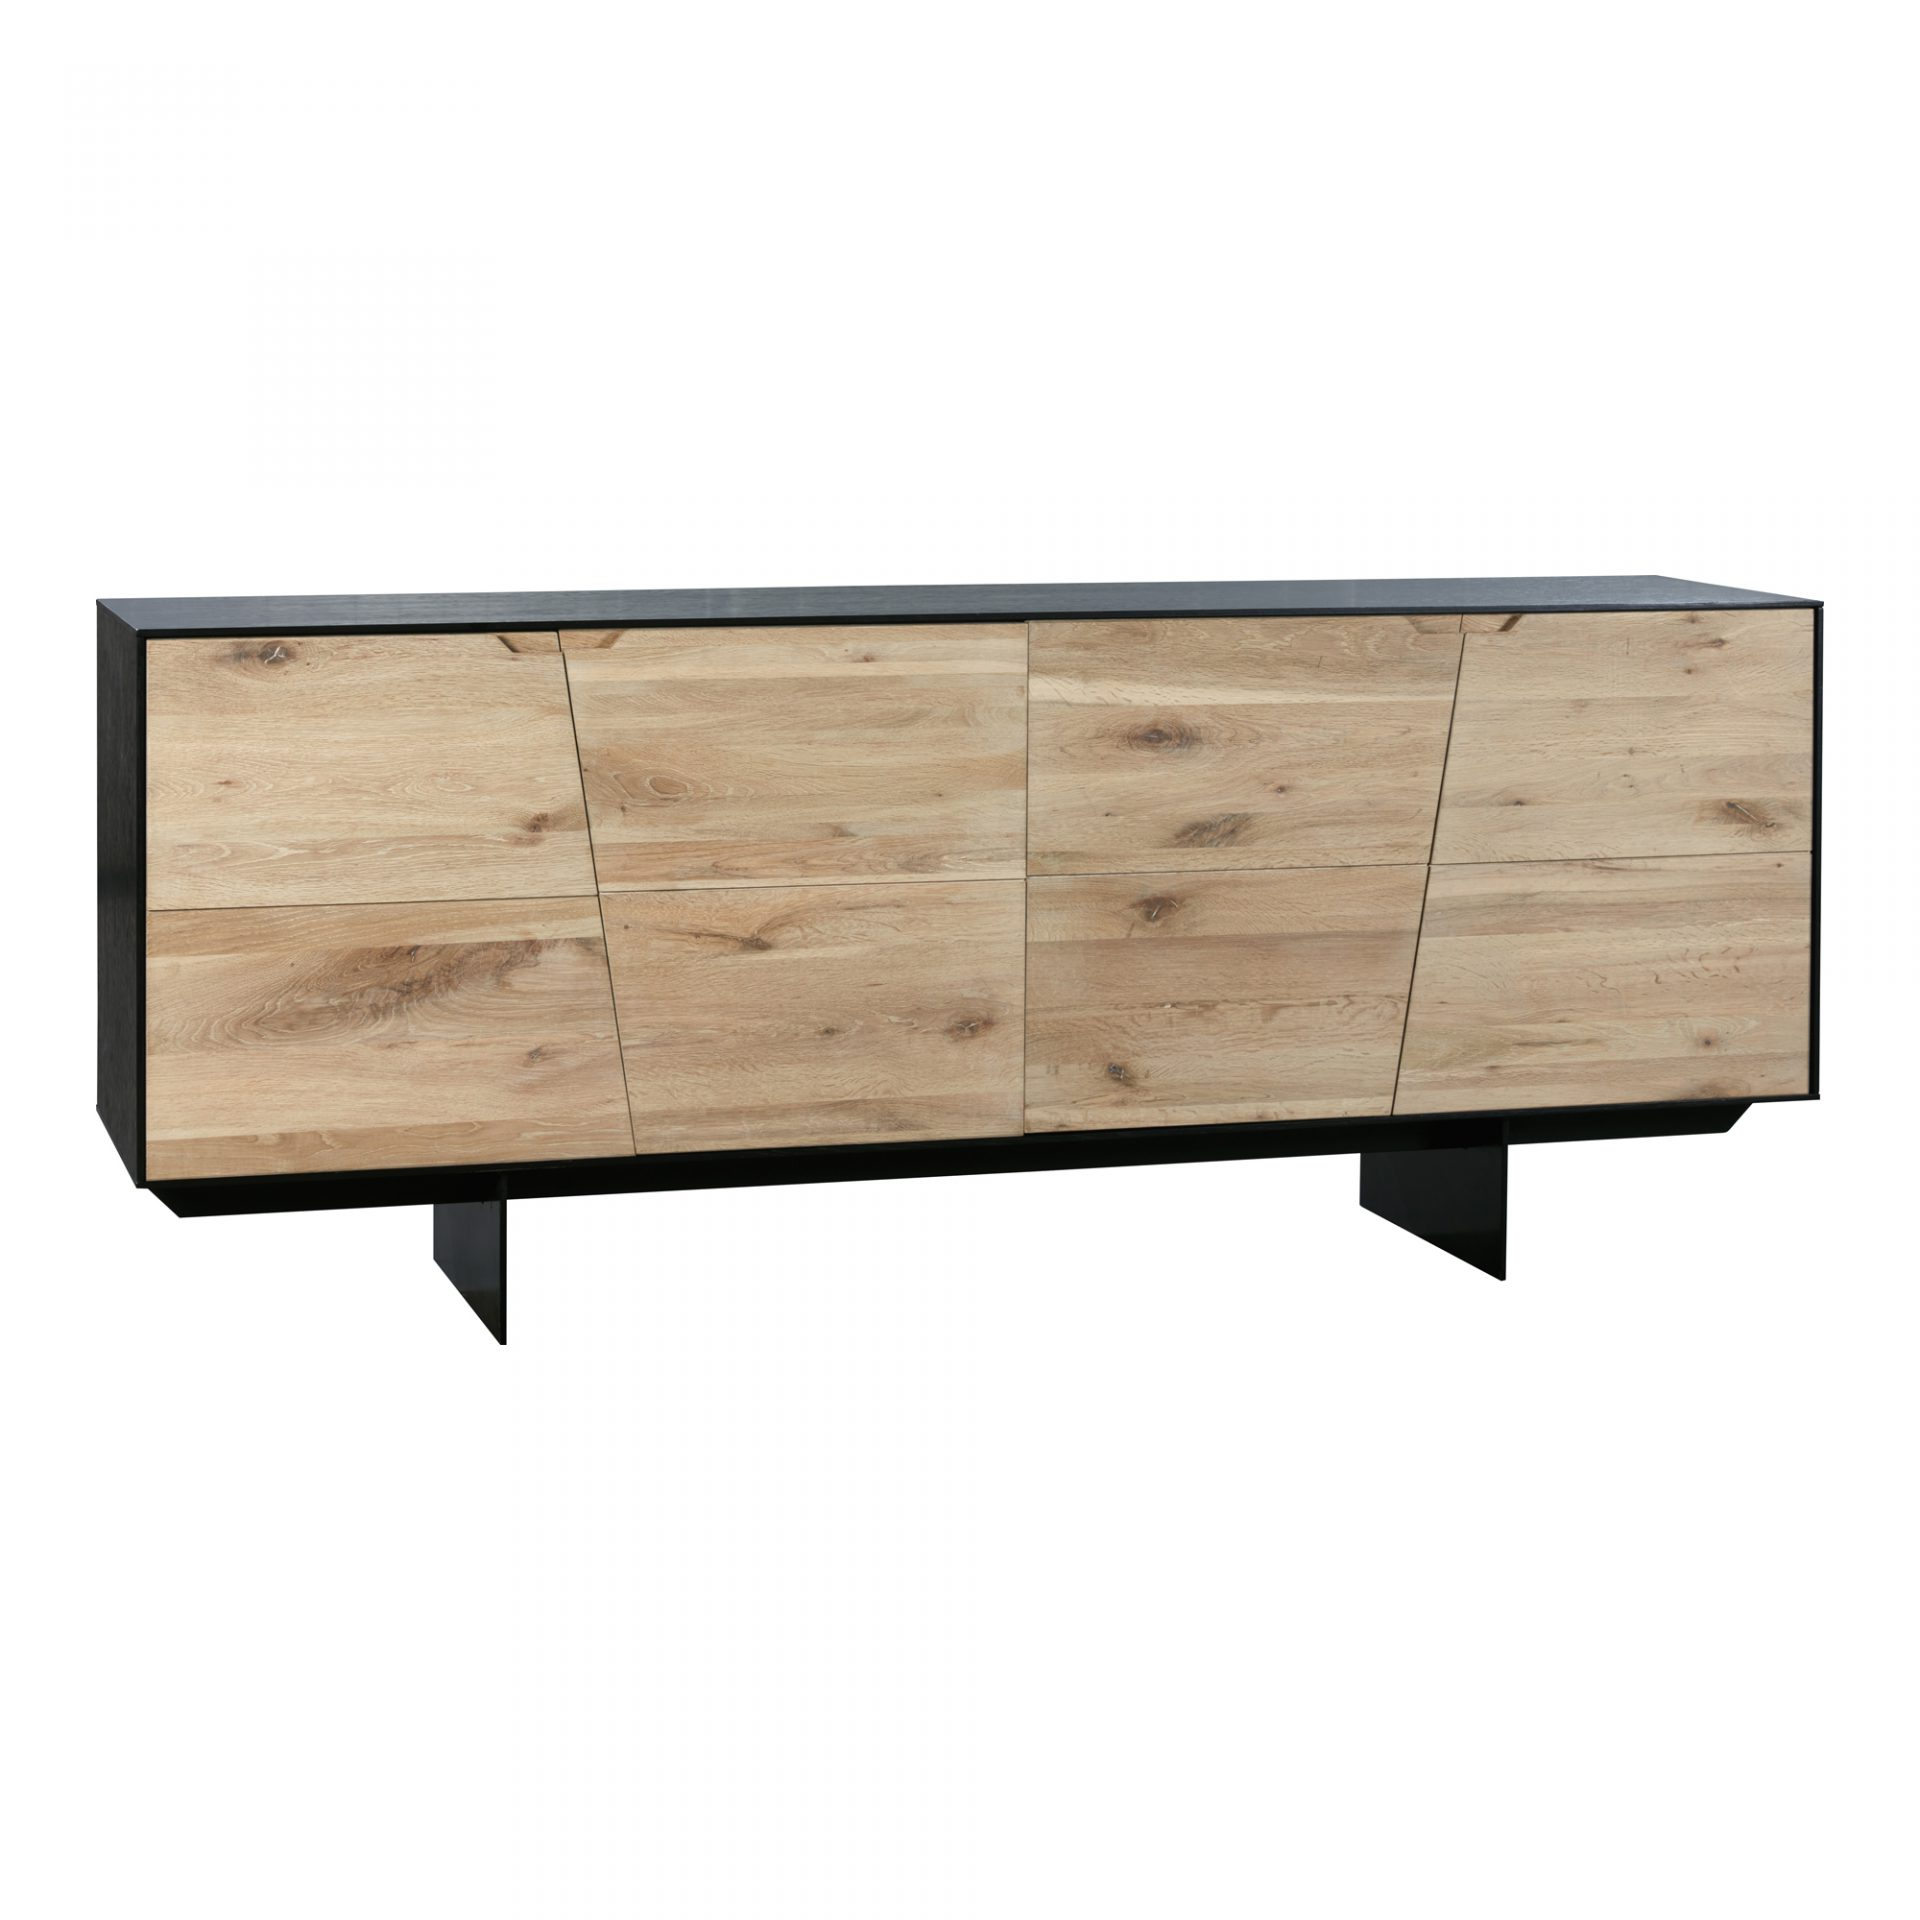 Sideboards & Storage | Categories | Moe's Wholesale Regarding Solid Wood Contemporary Sideboards Buffets (View 17 of 30)